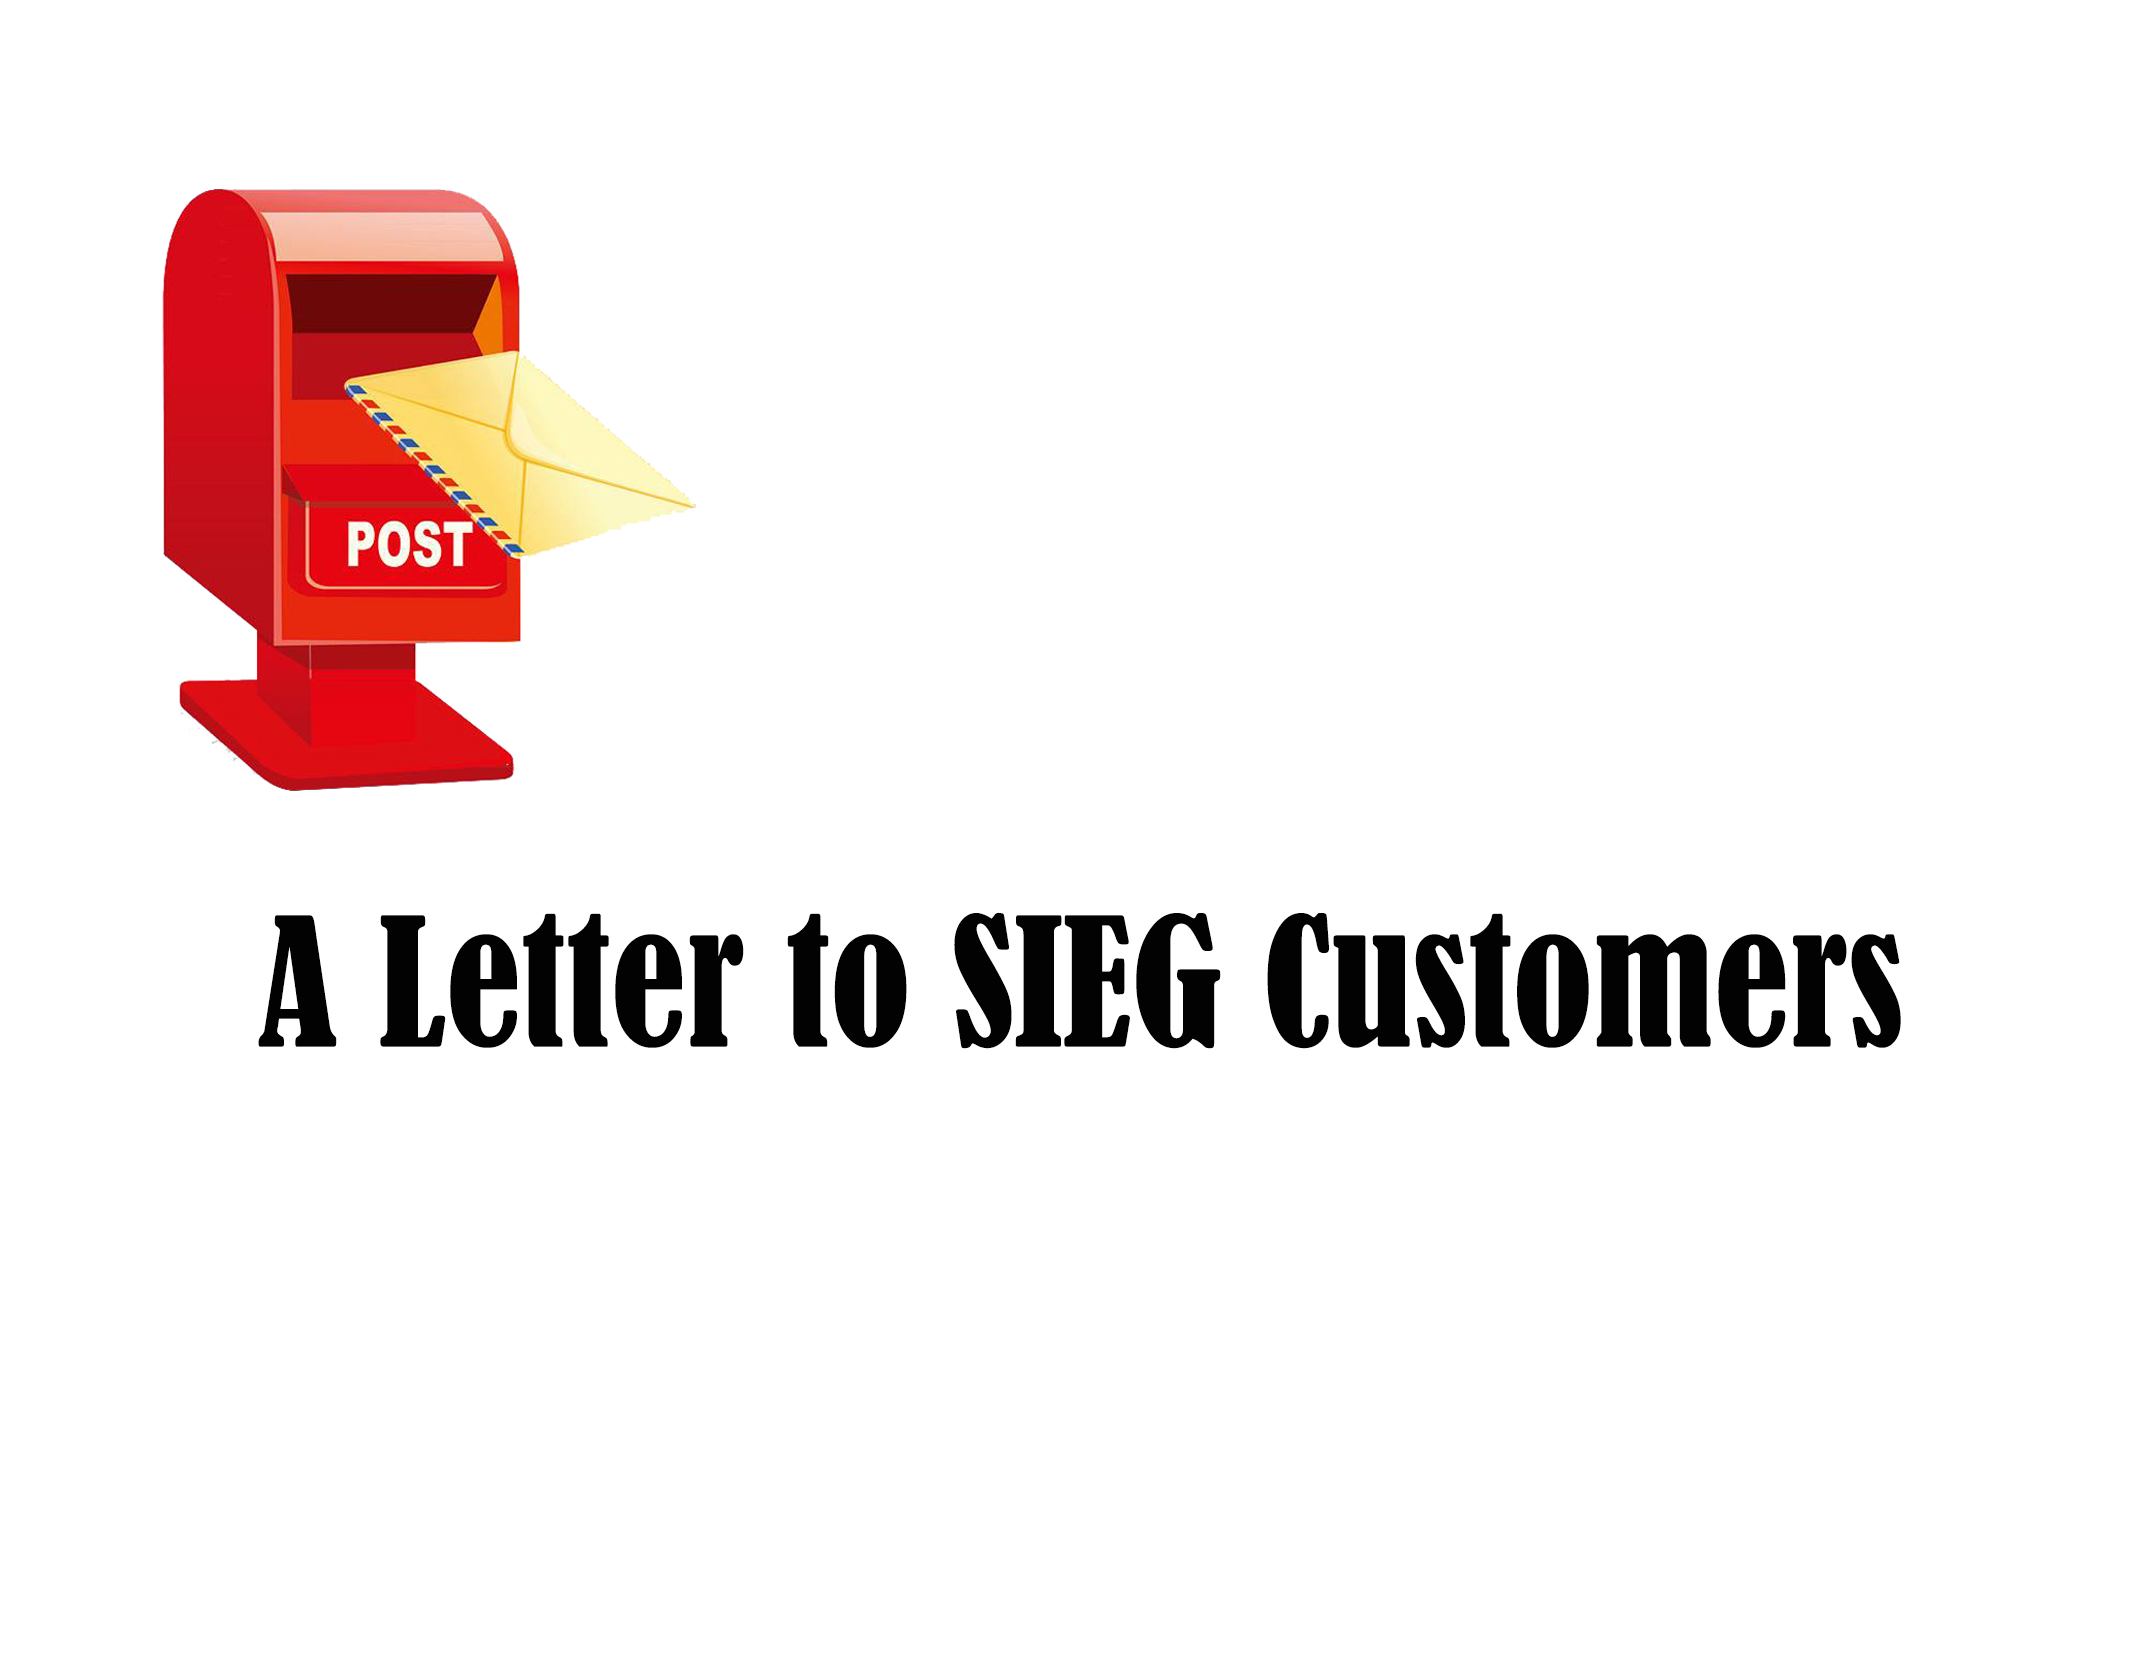 A Letter to SIEG Customers